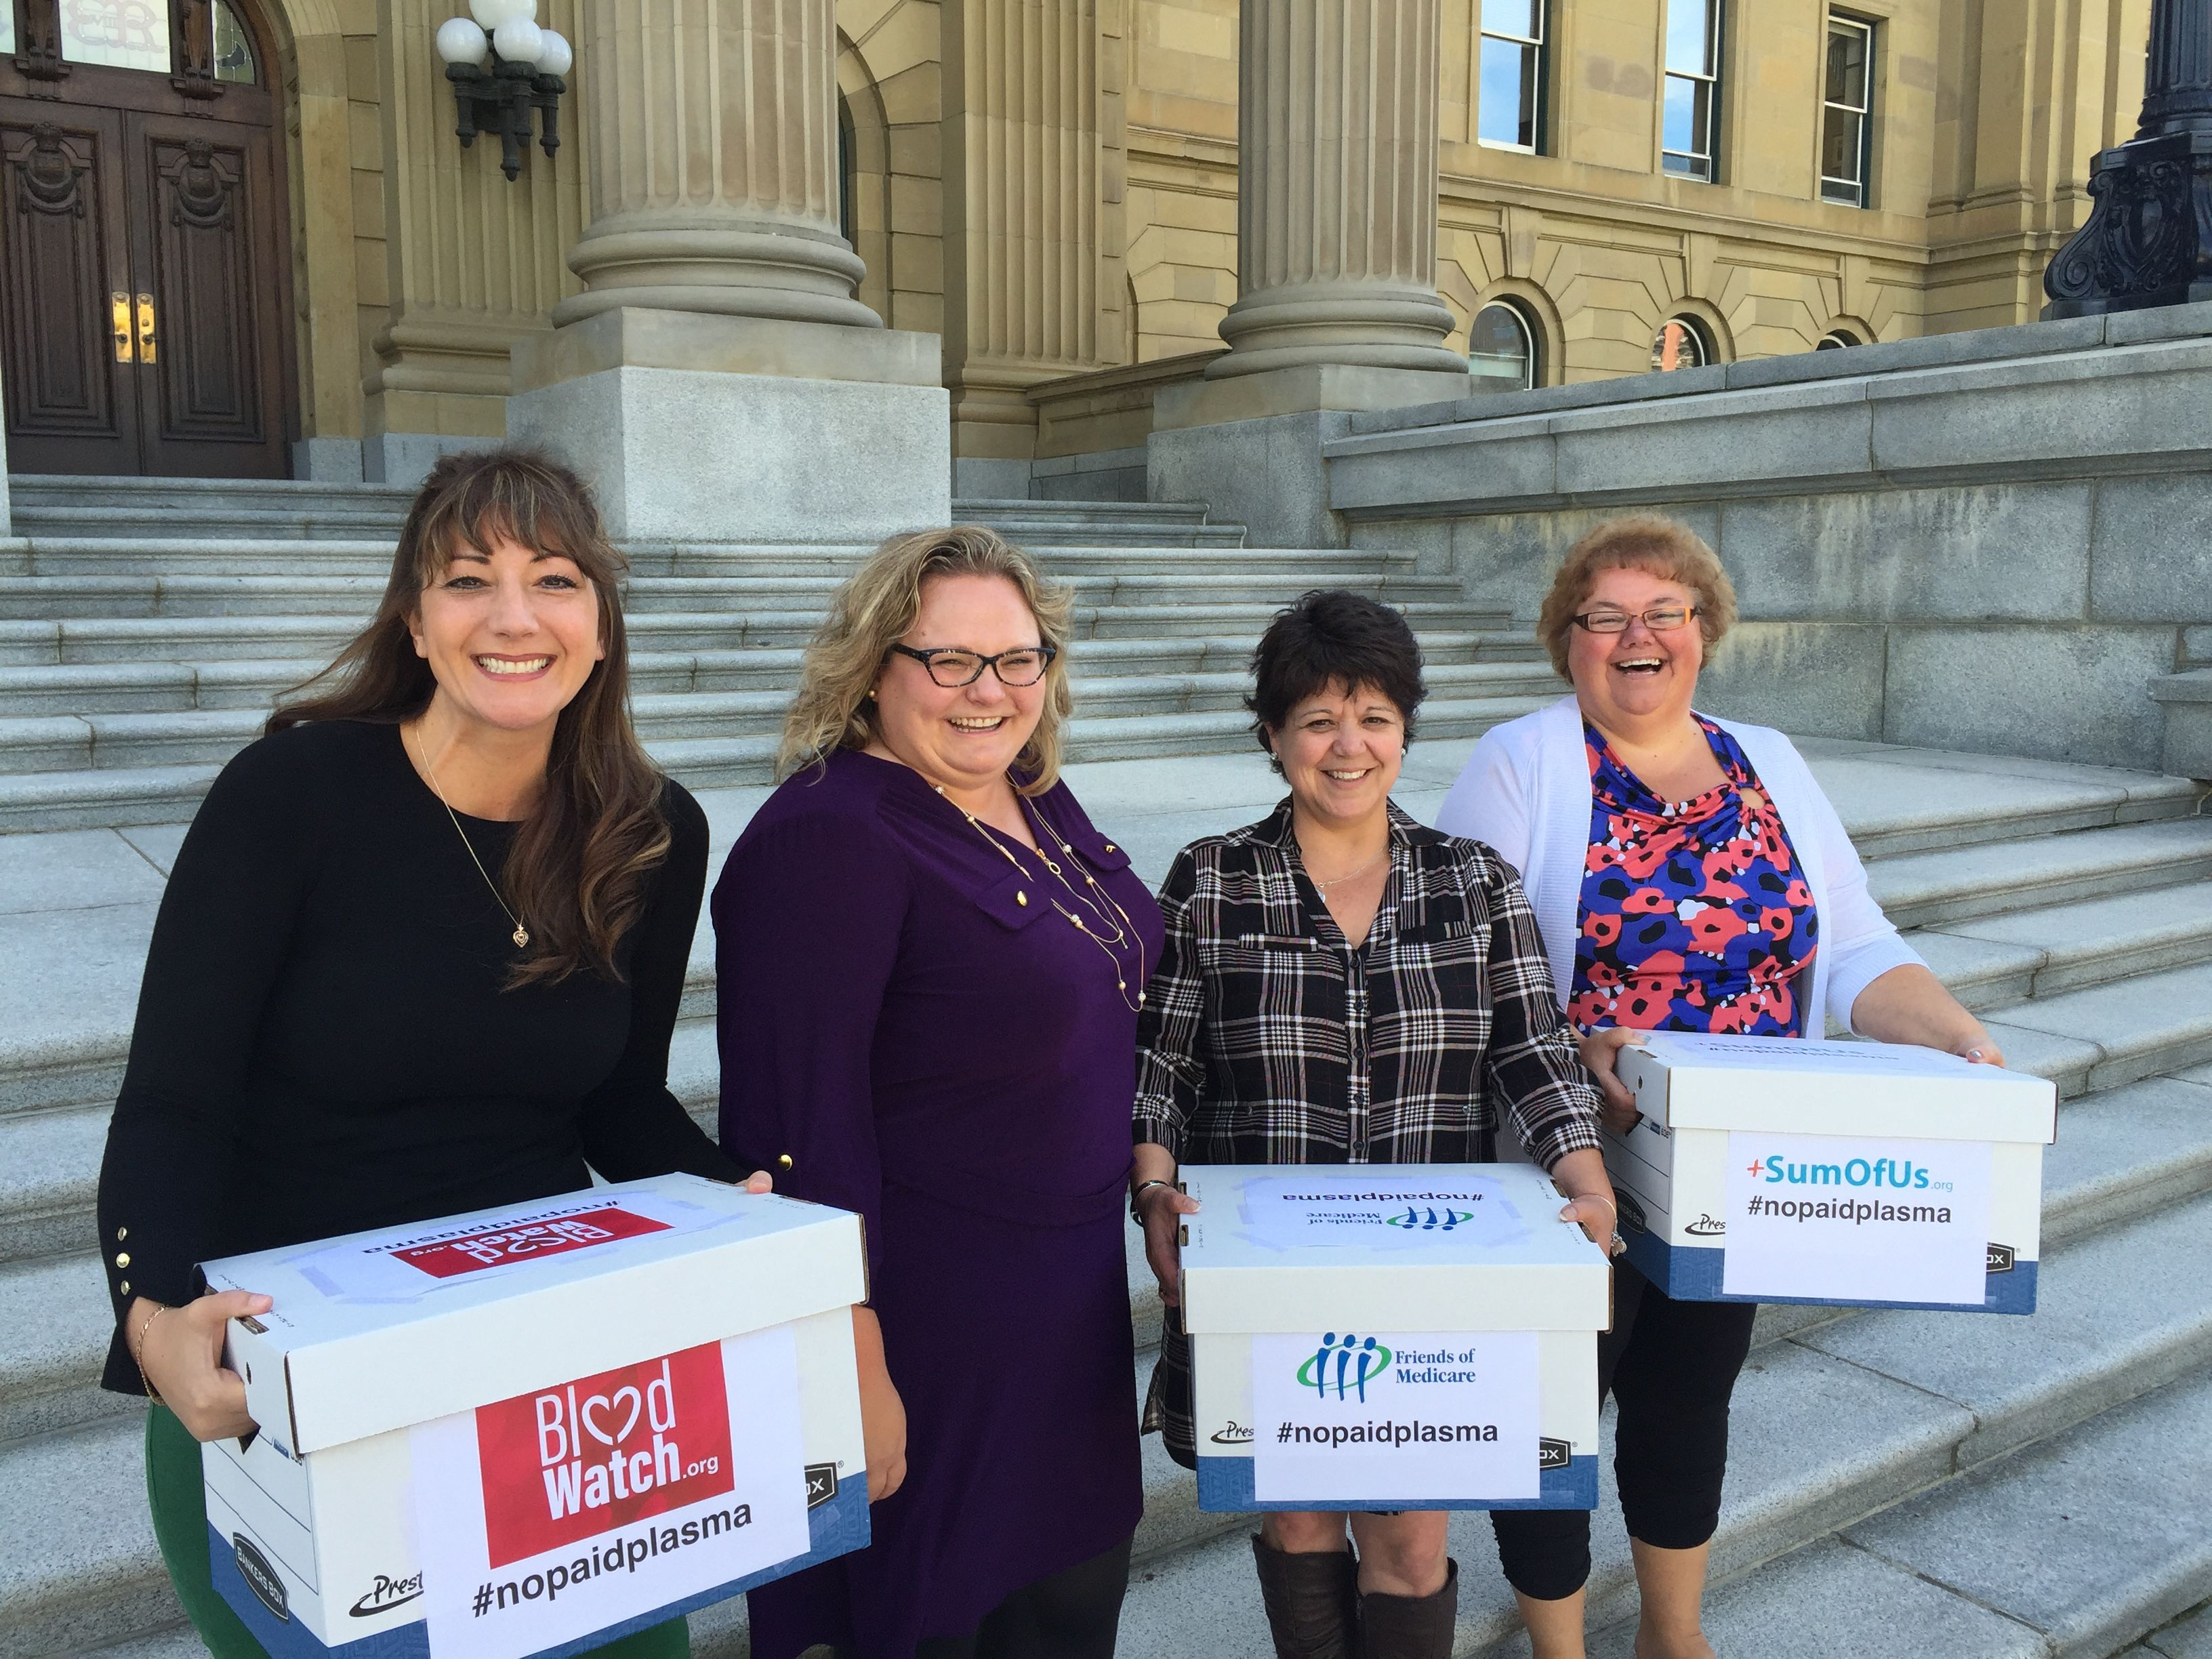 Sandra Azocar, Kat Lanteigne with BloodWatch.org & CUPE Alberta President Marle Roberts presenting petitions to Minister Hoffman calling to ban the sale of plasma.